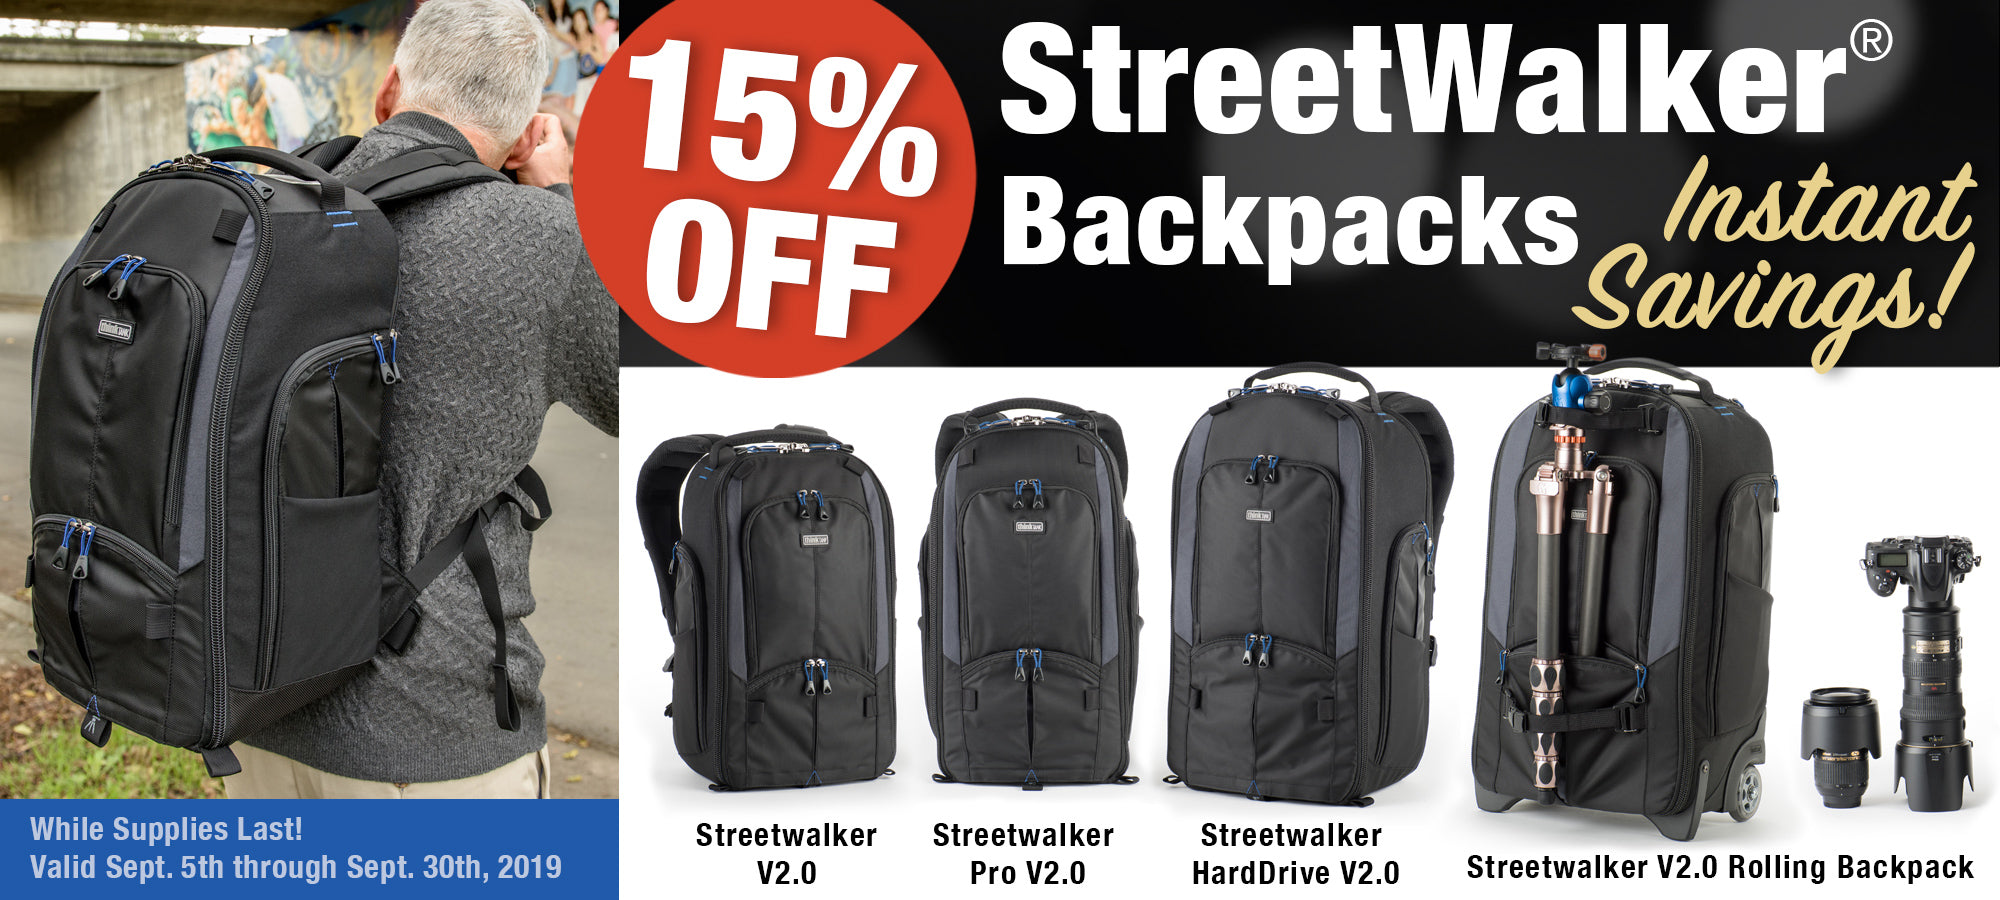 Move through a crowd with ease and carry all the camera gear you need. The StreetWalker backpacks' slim, vertical design creates a comfortable pack for all your gear and accessories.